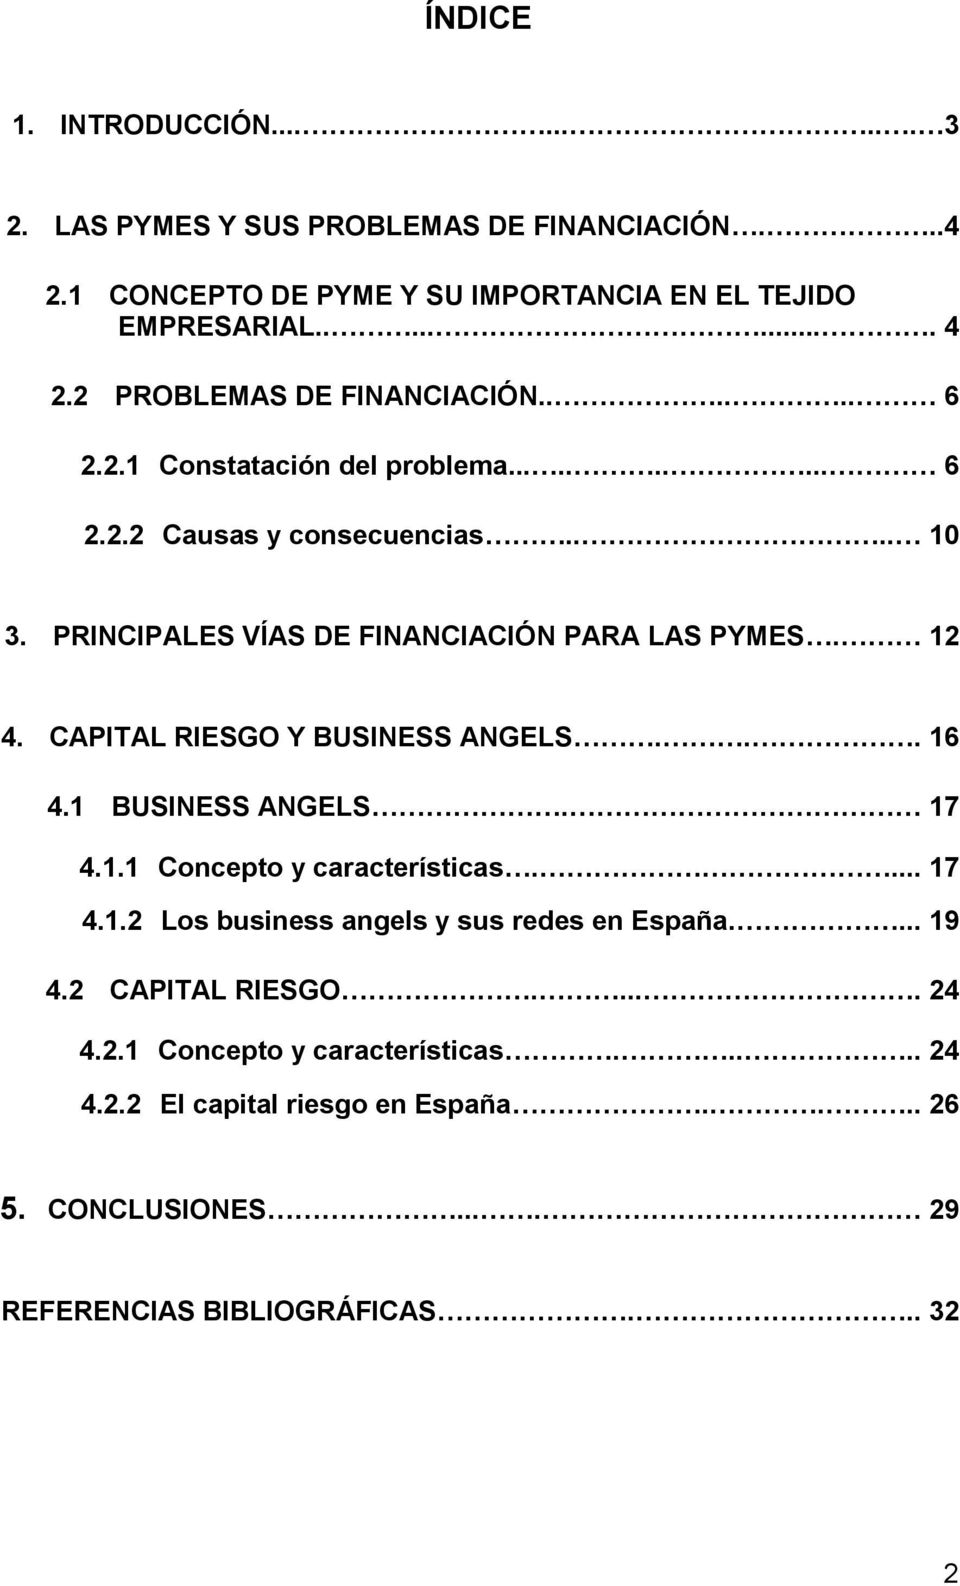 PRINCIPALES VÍAS DE FINANCIACIÓN PARA LAS PYMES. 12 4. CAPITAL RIESGO Y BUSINESS ANGELS... 16 4.1 BUSINESS ANGELS. 17 4.1.1 Concepto y características.... 17 4.1.2 Los business angels y sus redes en España.